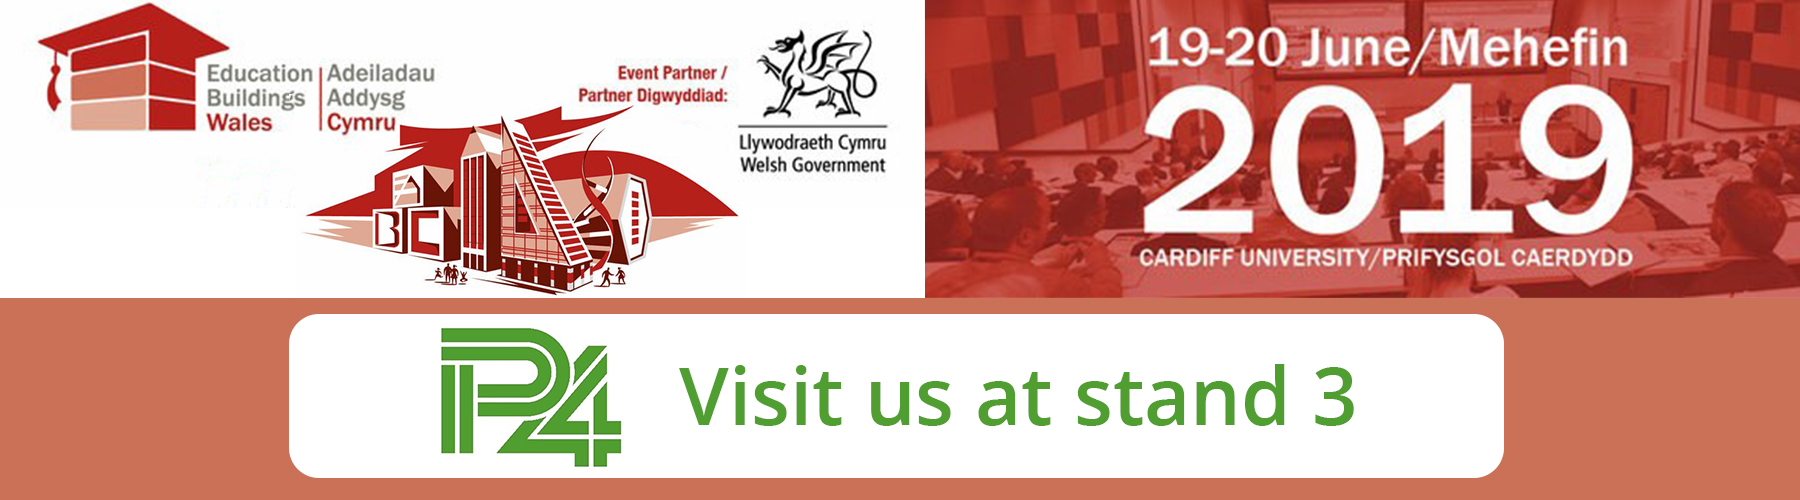 wales-learning-spaces